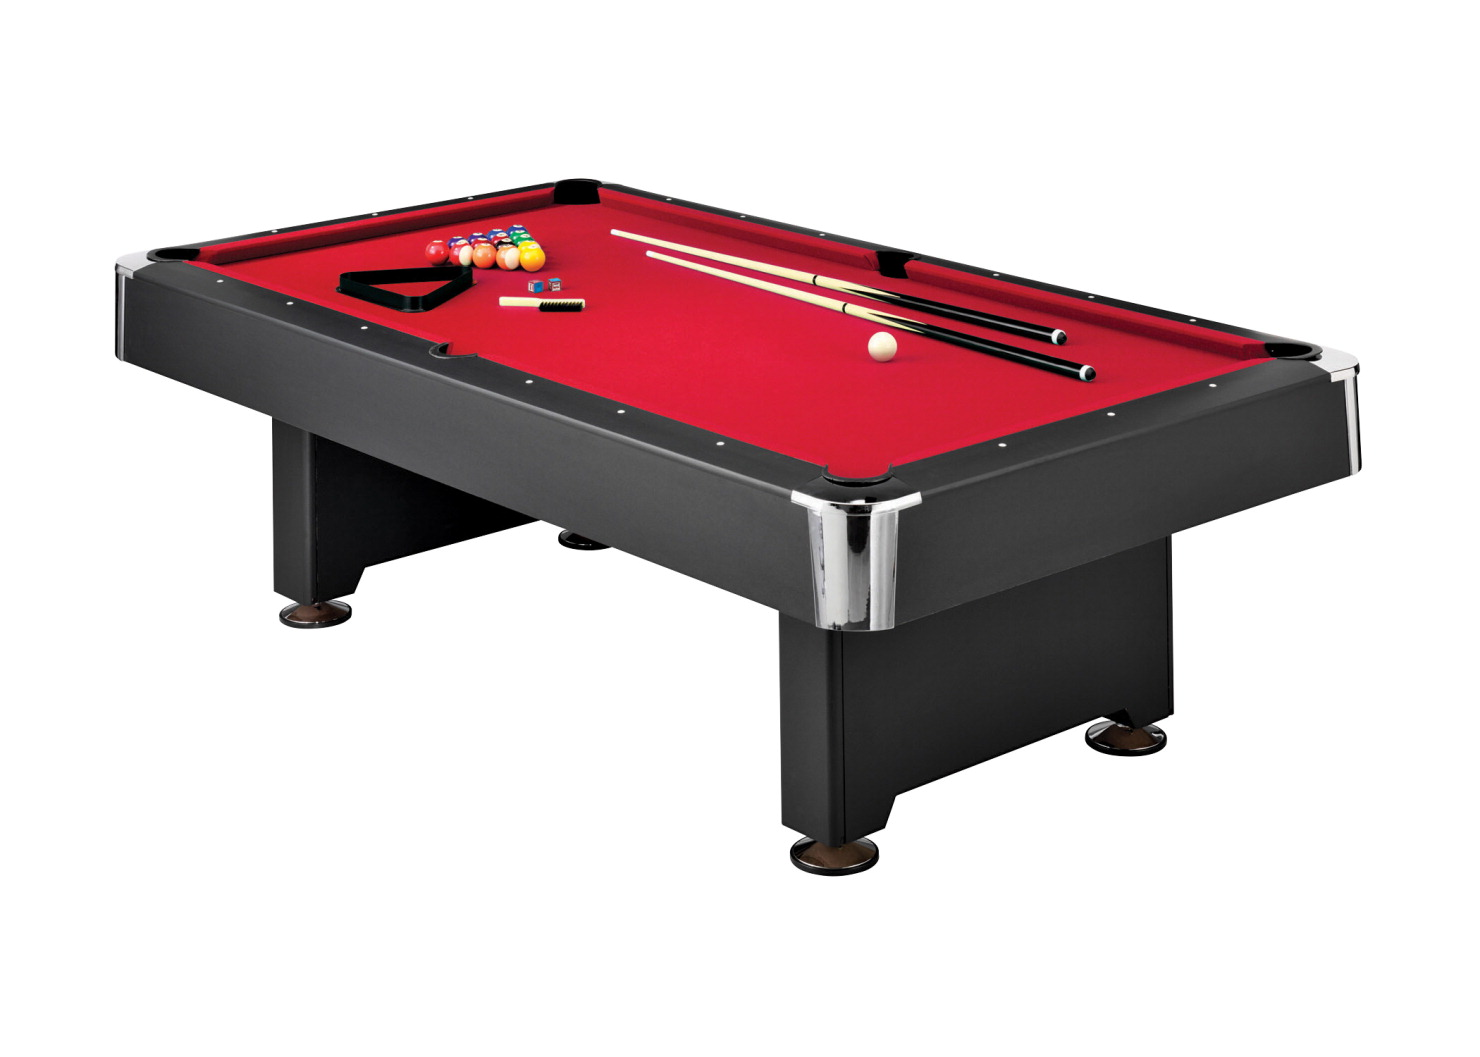 Donovan II Billiard Pool Table Set SOAR Life Products - Red top pool table